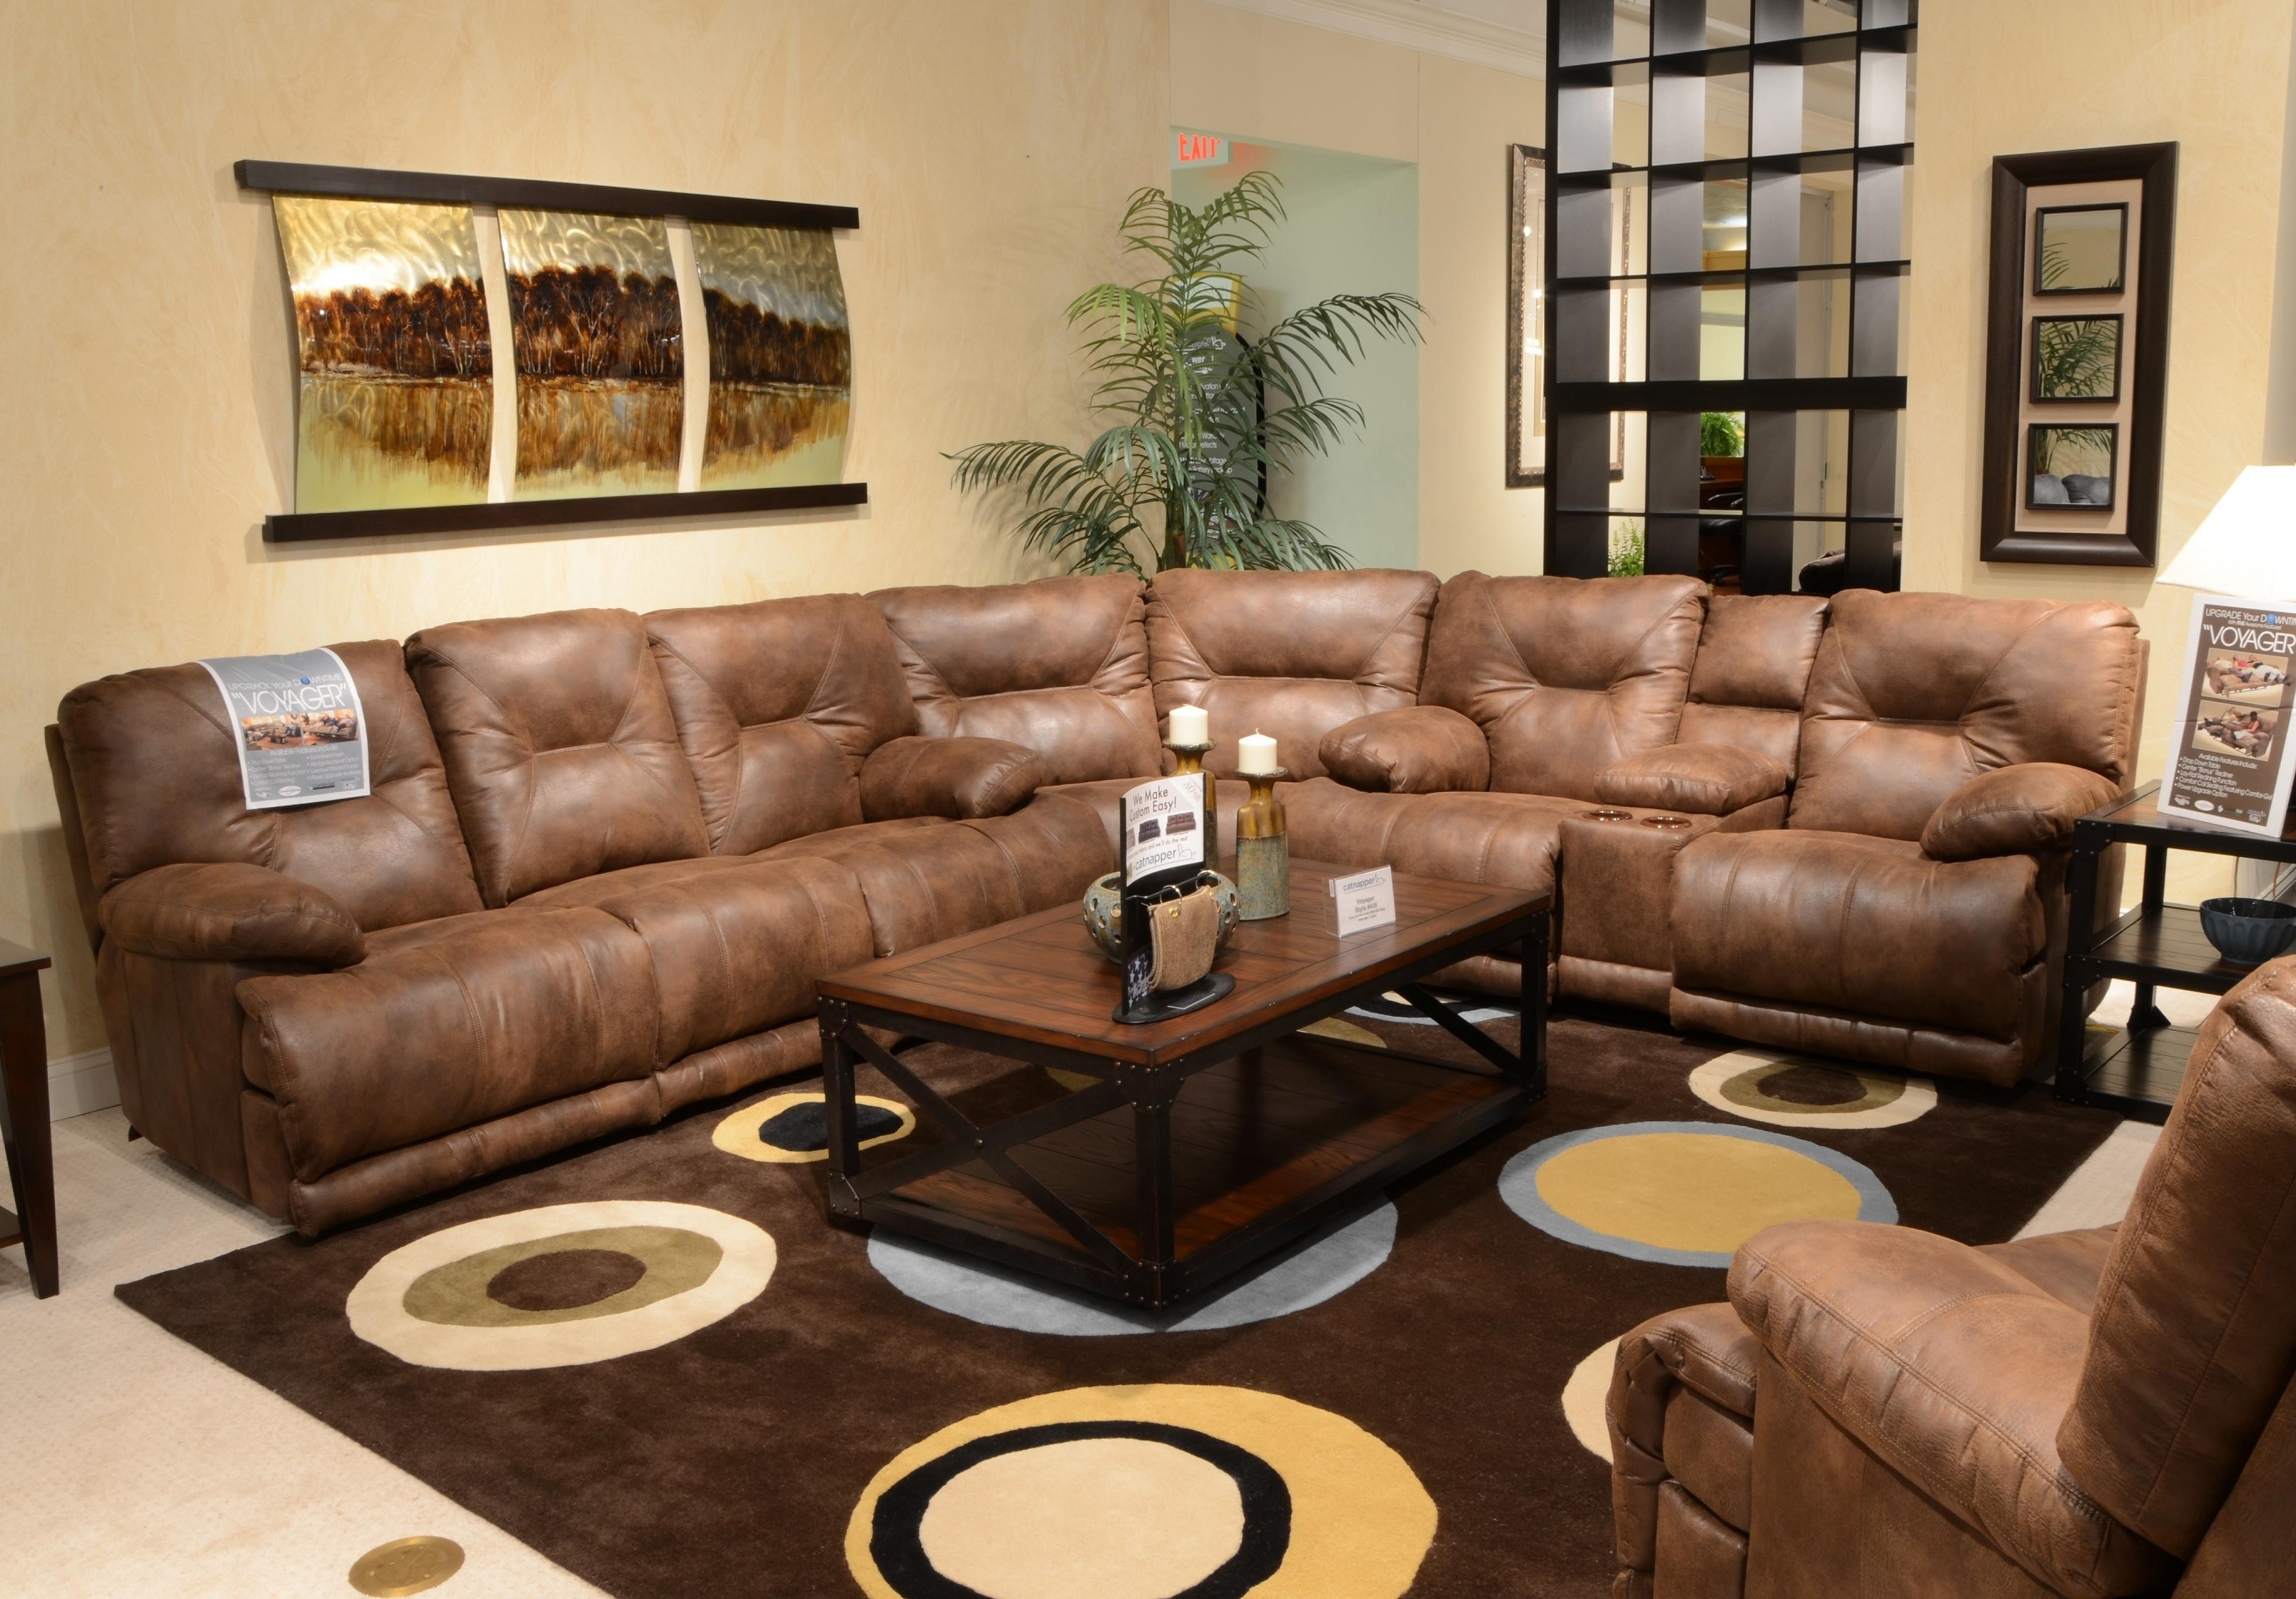 Living Room : 4Way Living Room Sectional Sofa And Sofas Ideas Home With Sectional Sofas Decorating (View 5 of 10)